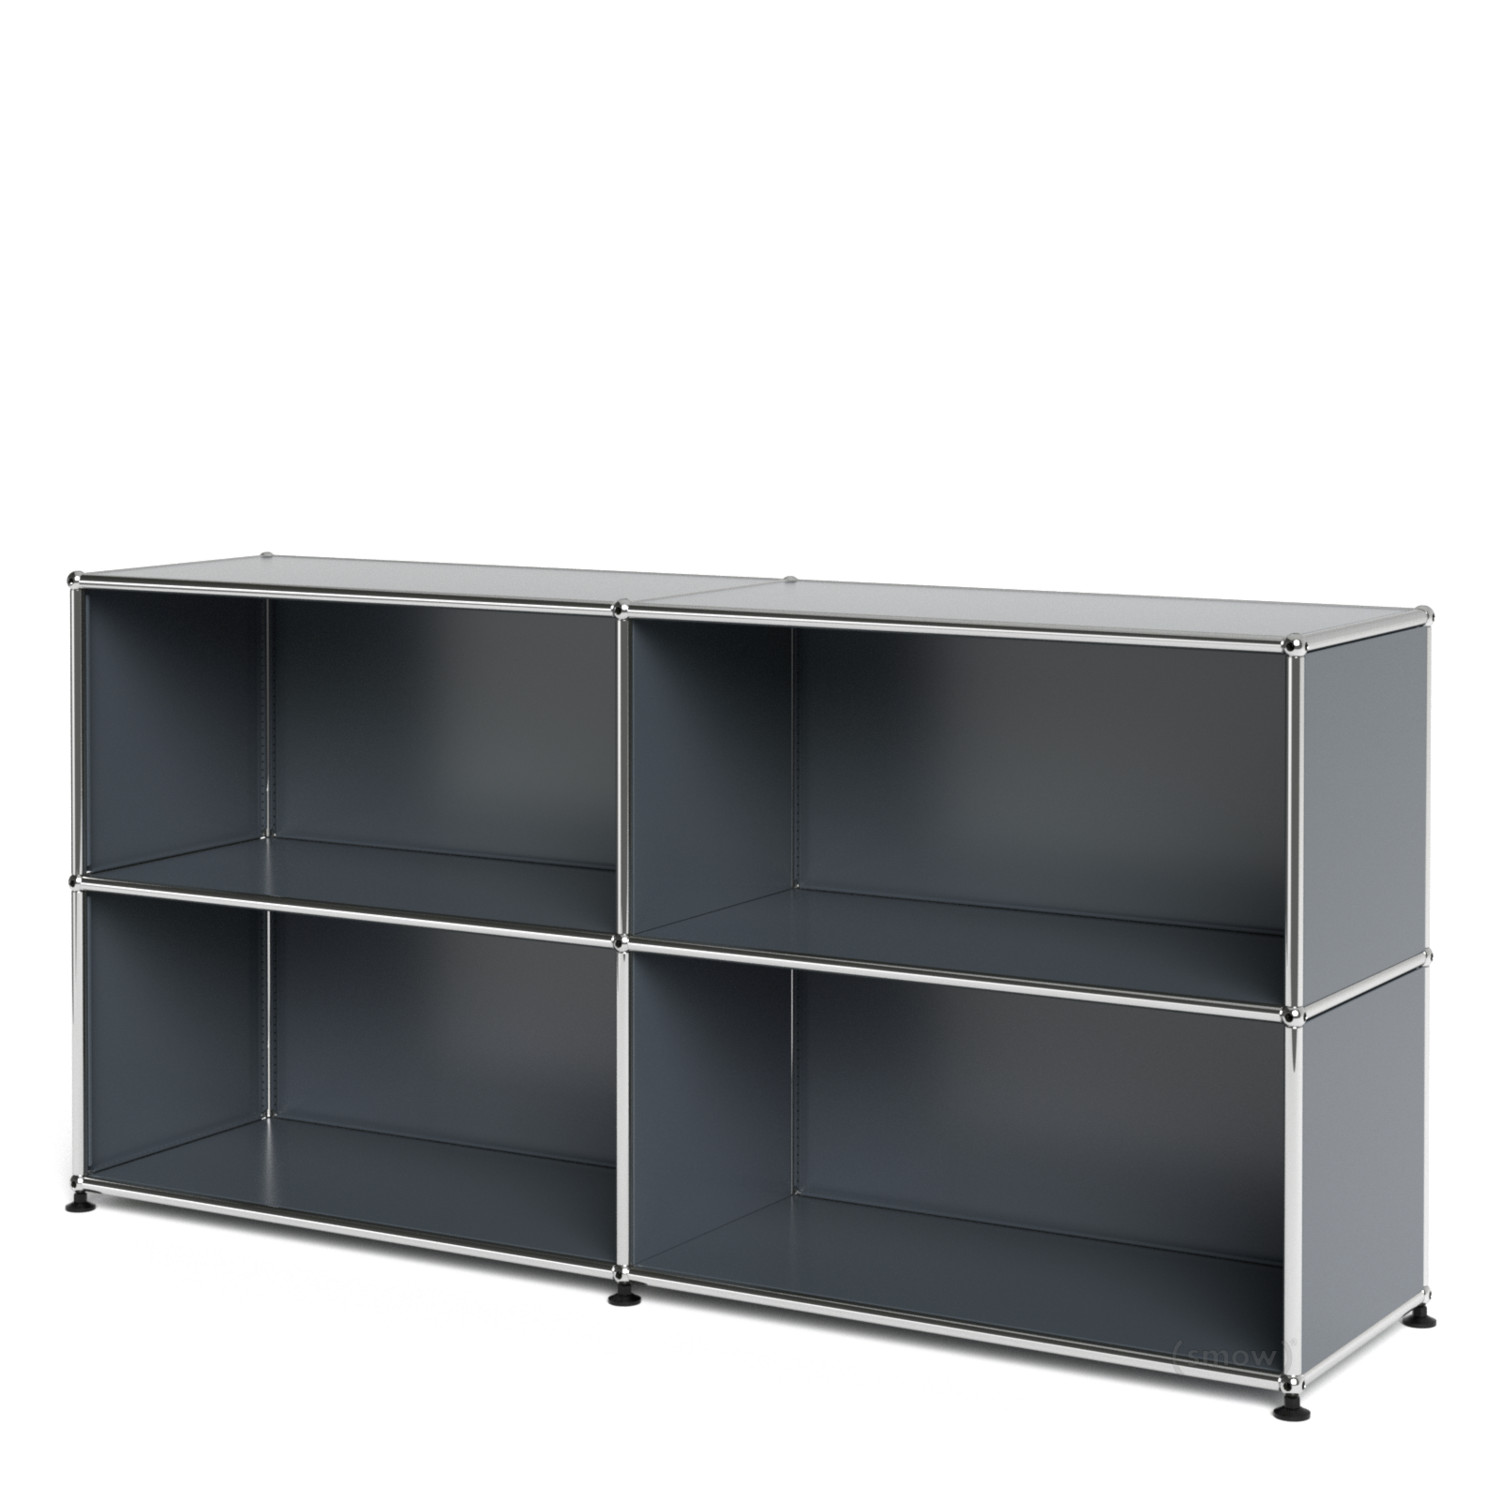 Usm haller sideboard l customisable mid grey ral 7005 for Usm haller sideboard weiay